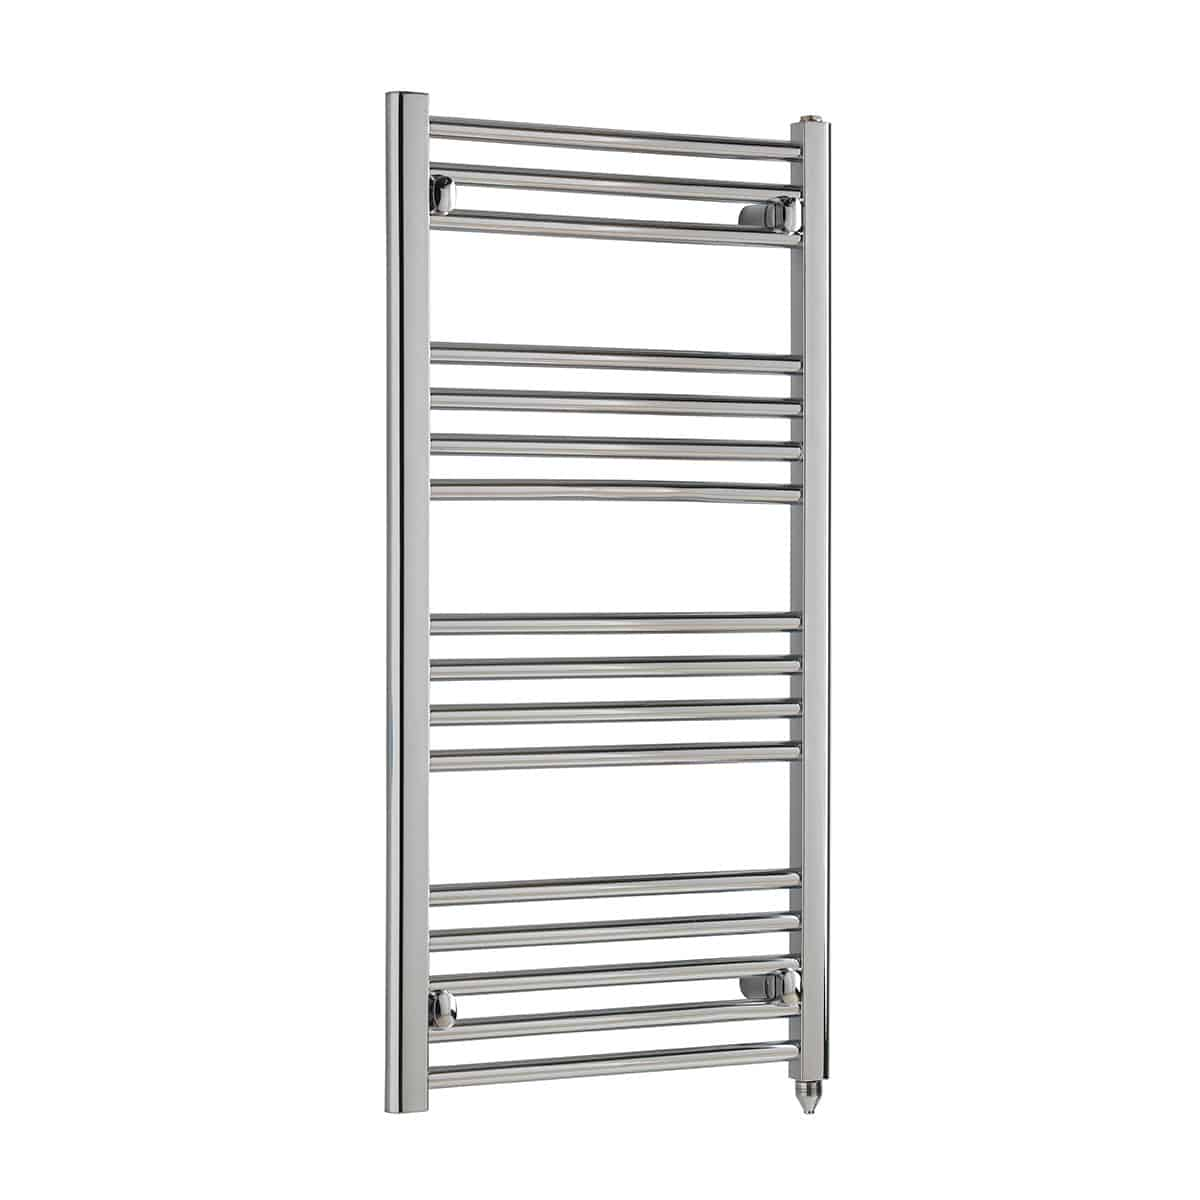 Thermostatic Electric Heated Towel Rail Radiator